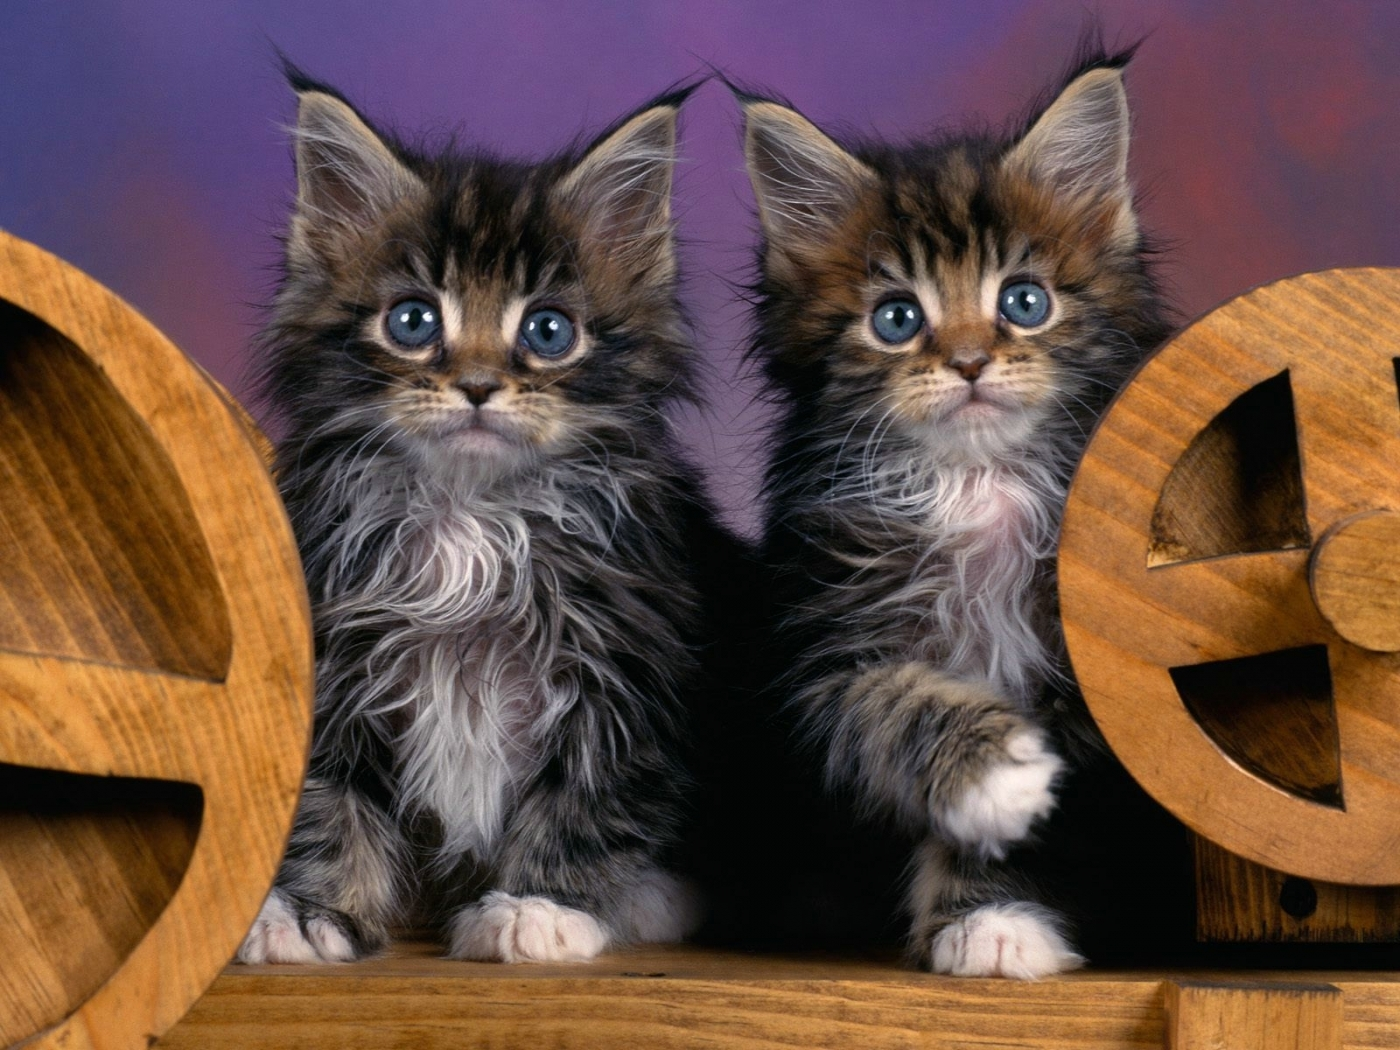 50157 download wallpaper Animals, Cats screensavers and pictures for free